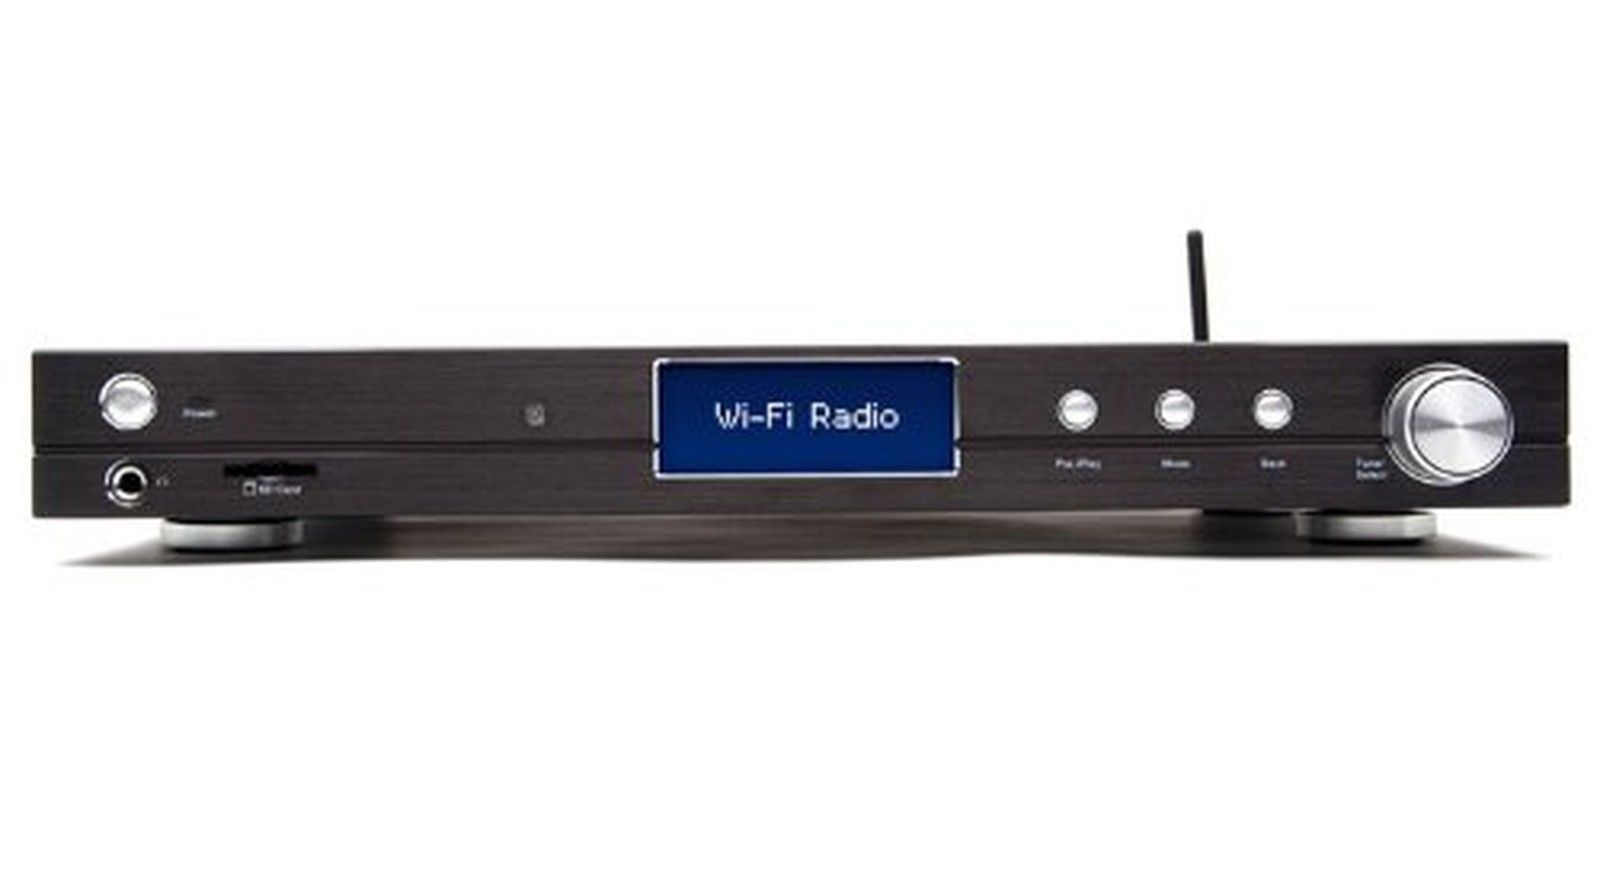 Grace Digital GDI-IRDT200 Hi-Fi Internet Radio Tuner